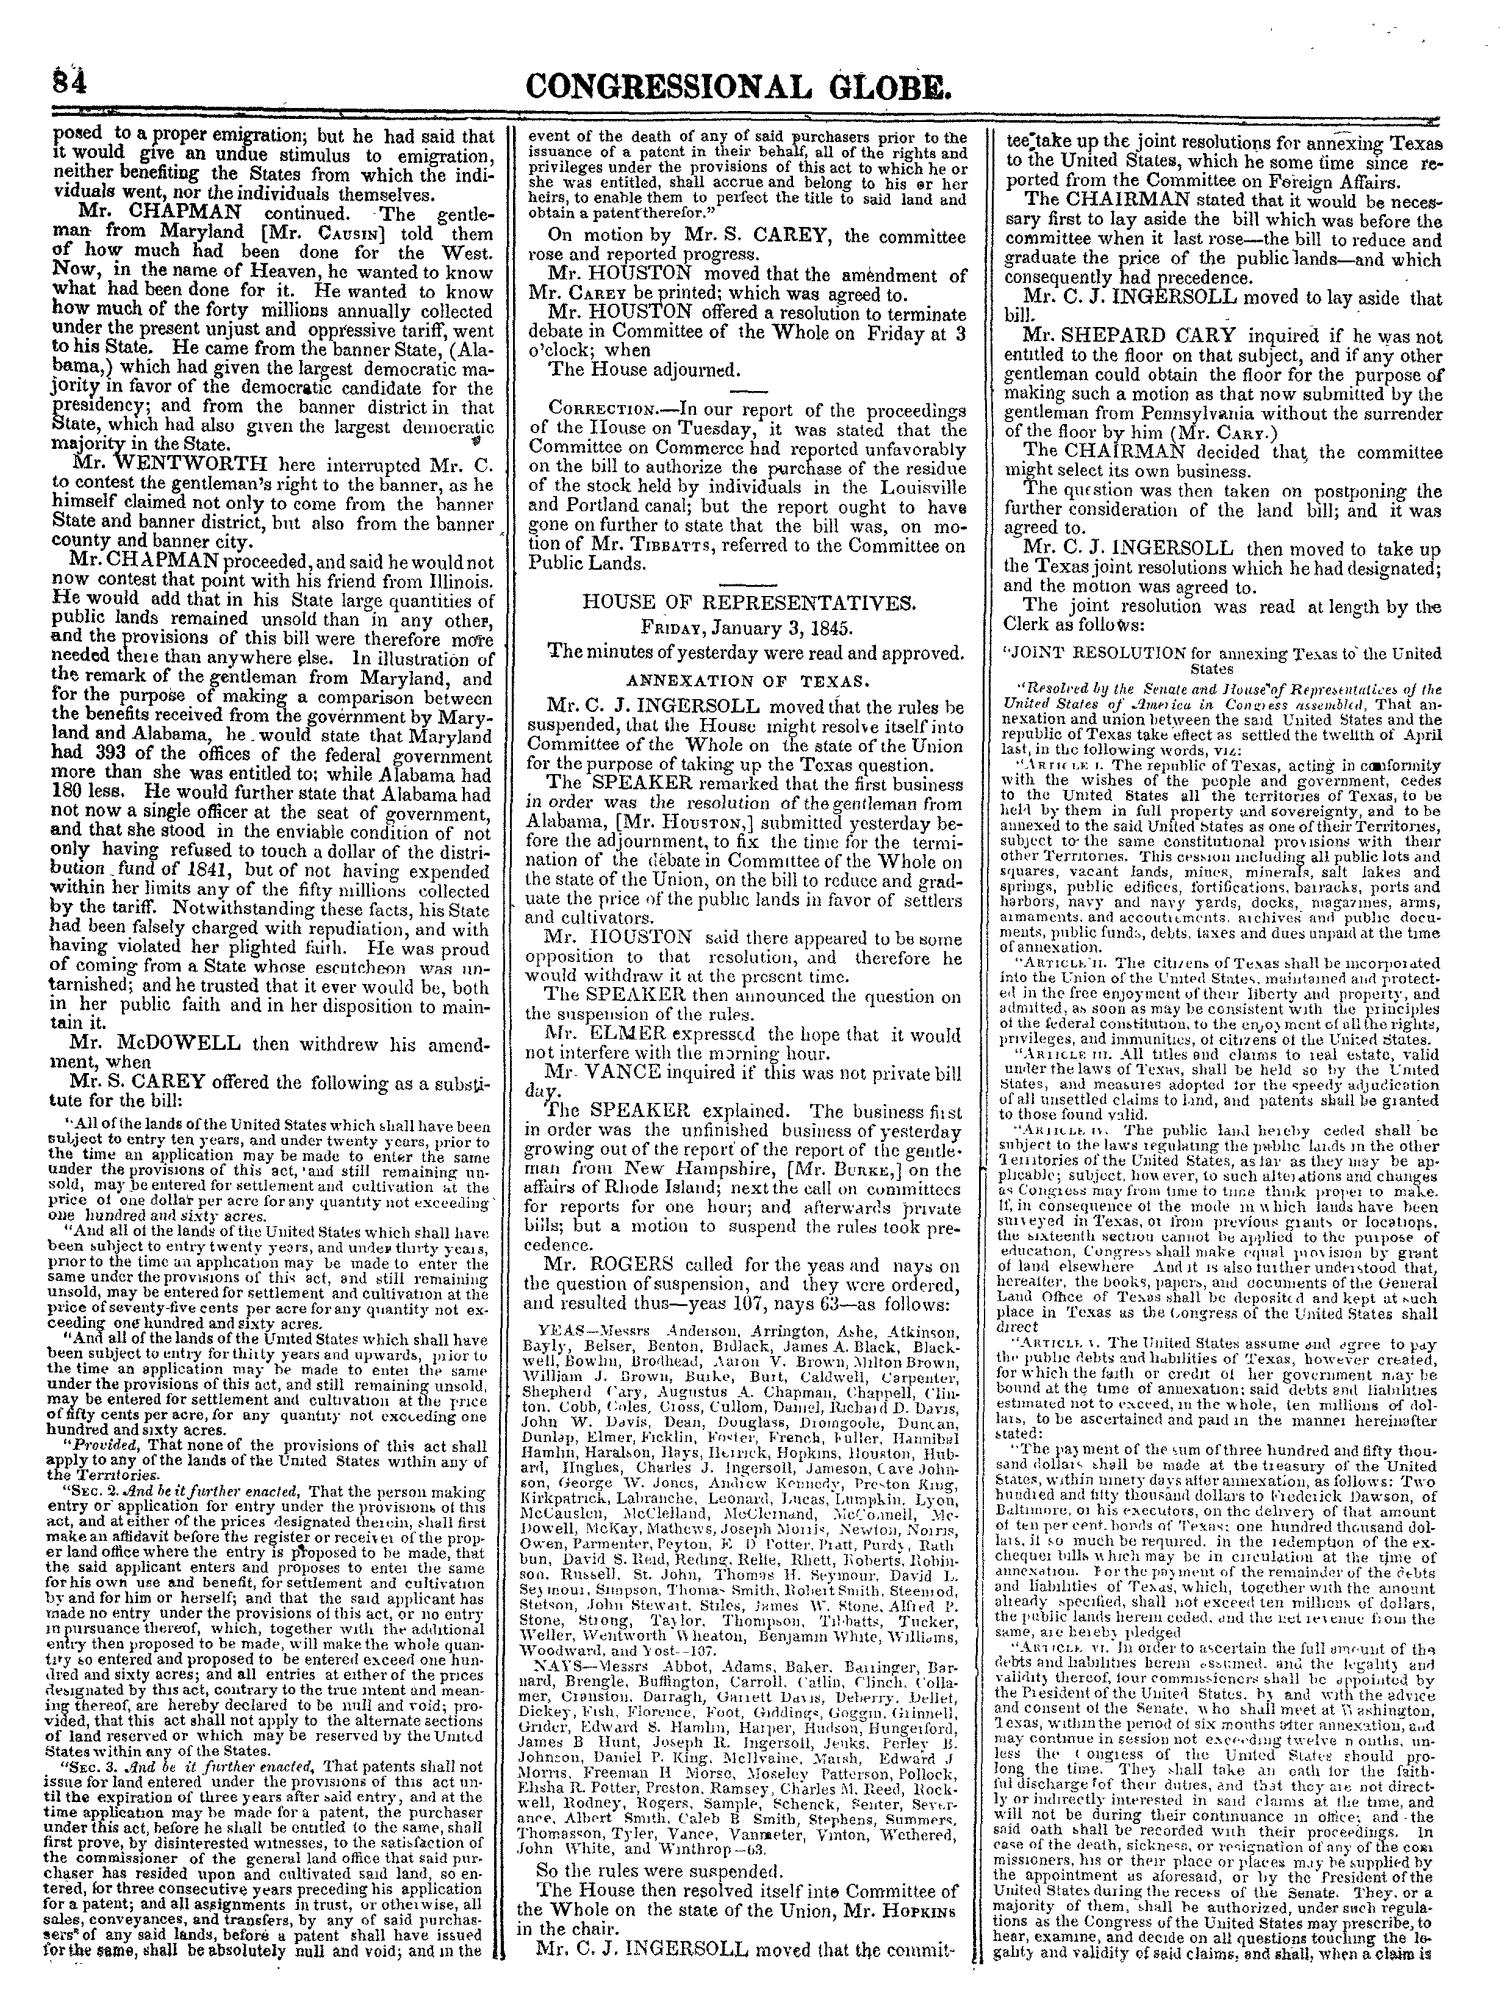 The Congressional Globe, Volume 14: Twenty-Eighth Congress, Second Session                                                                                                      84